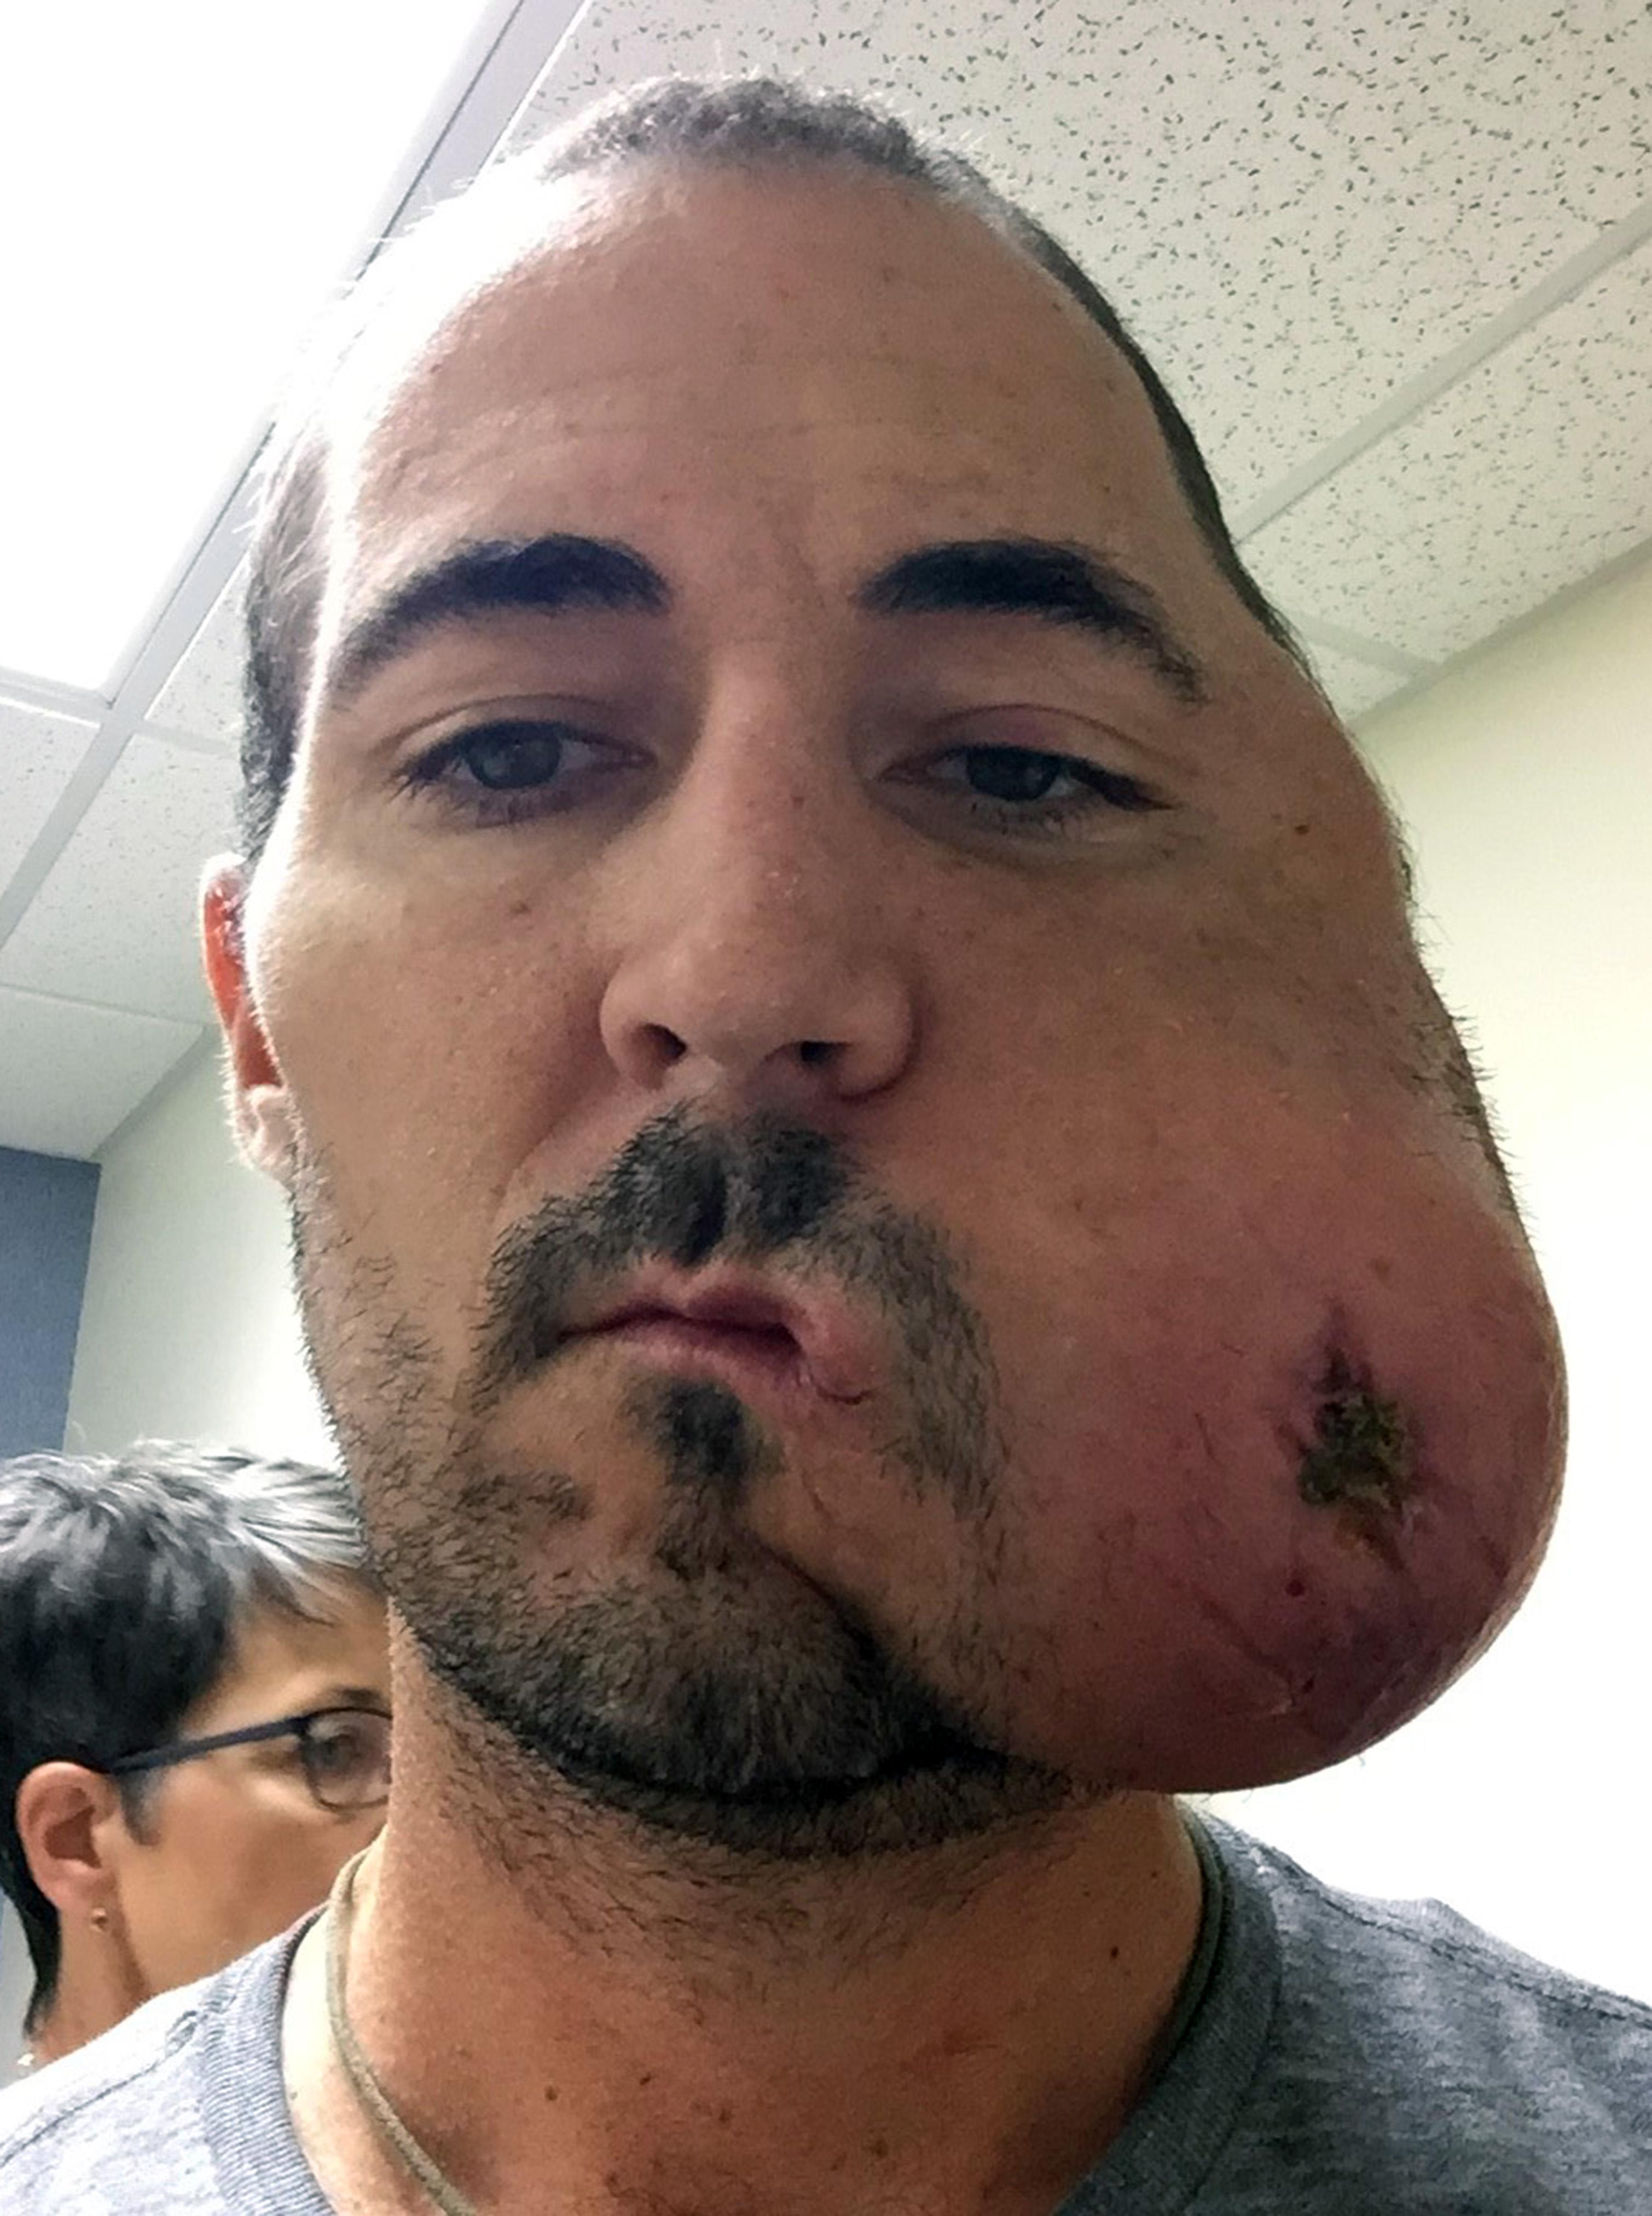 aggressive cancer of the face